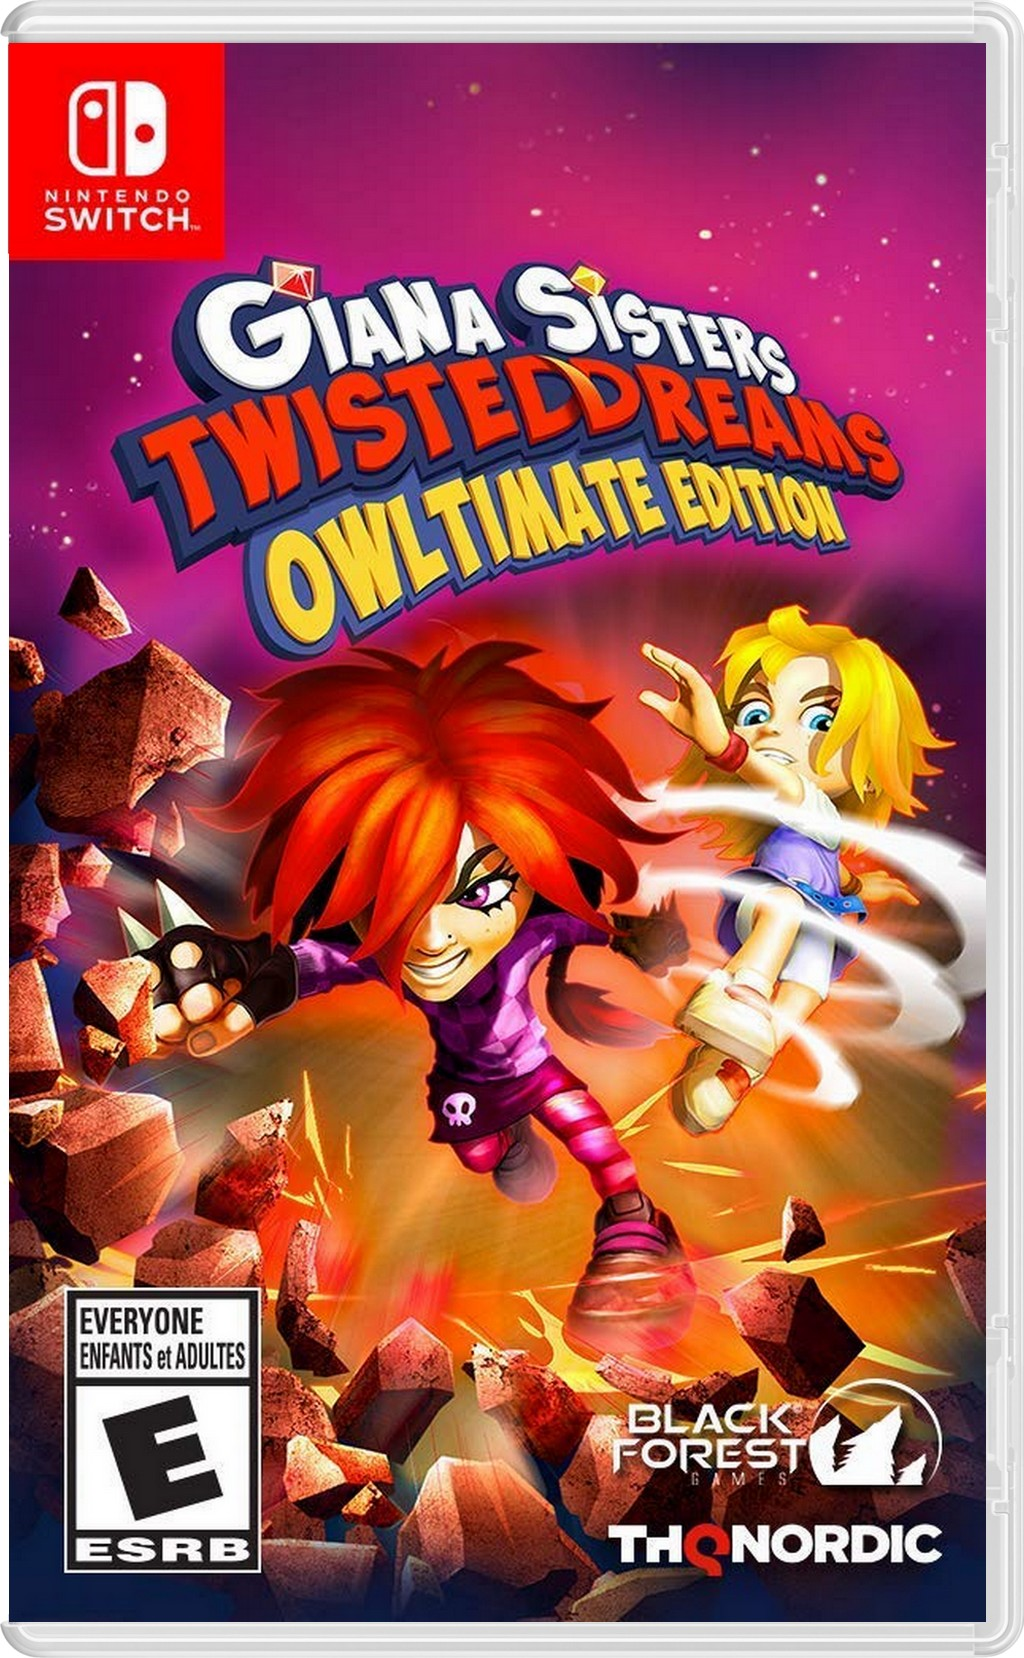 Giana Sisters Twisted Dreams - Owltimate Edition